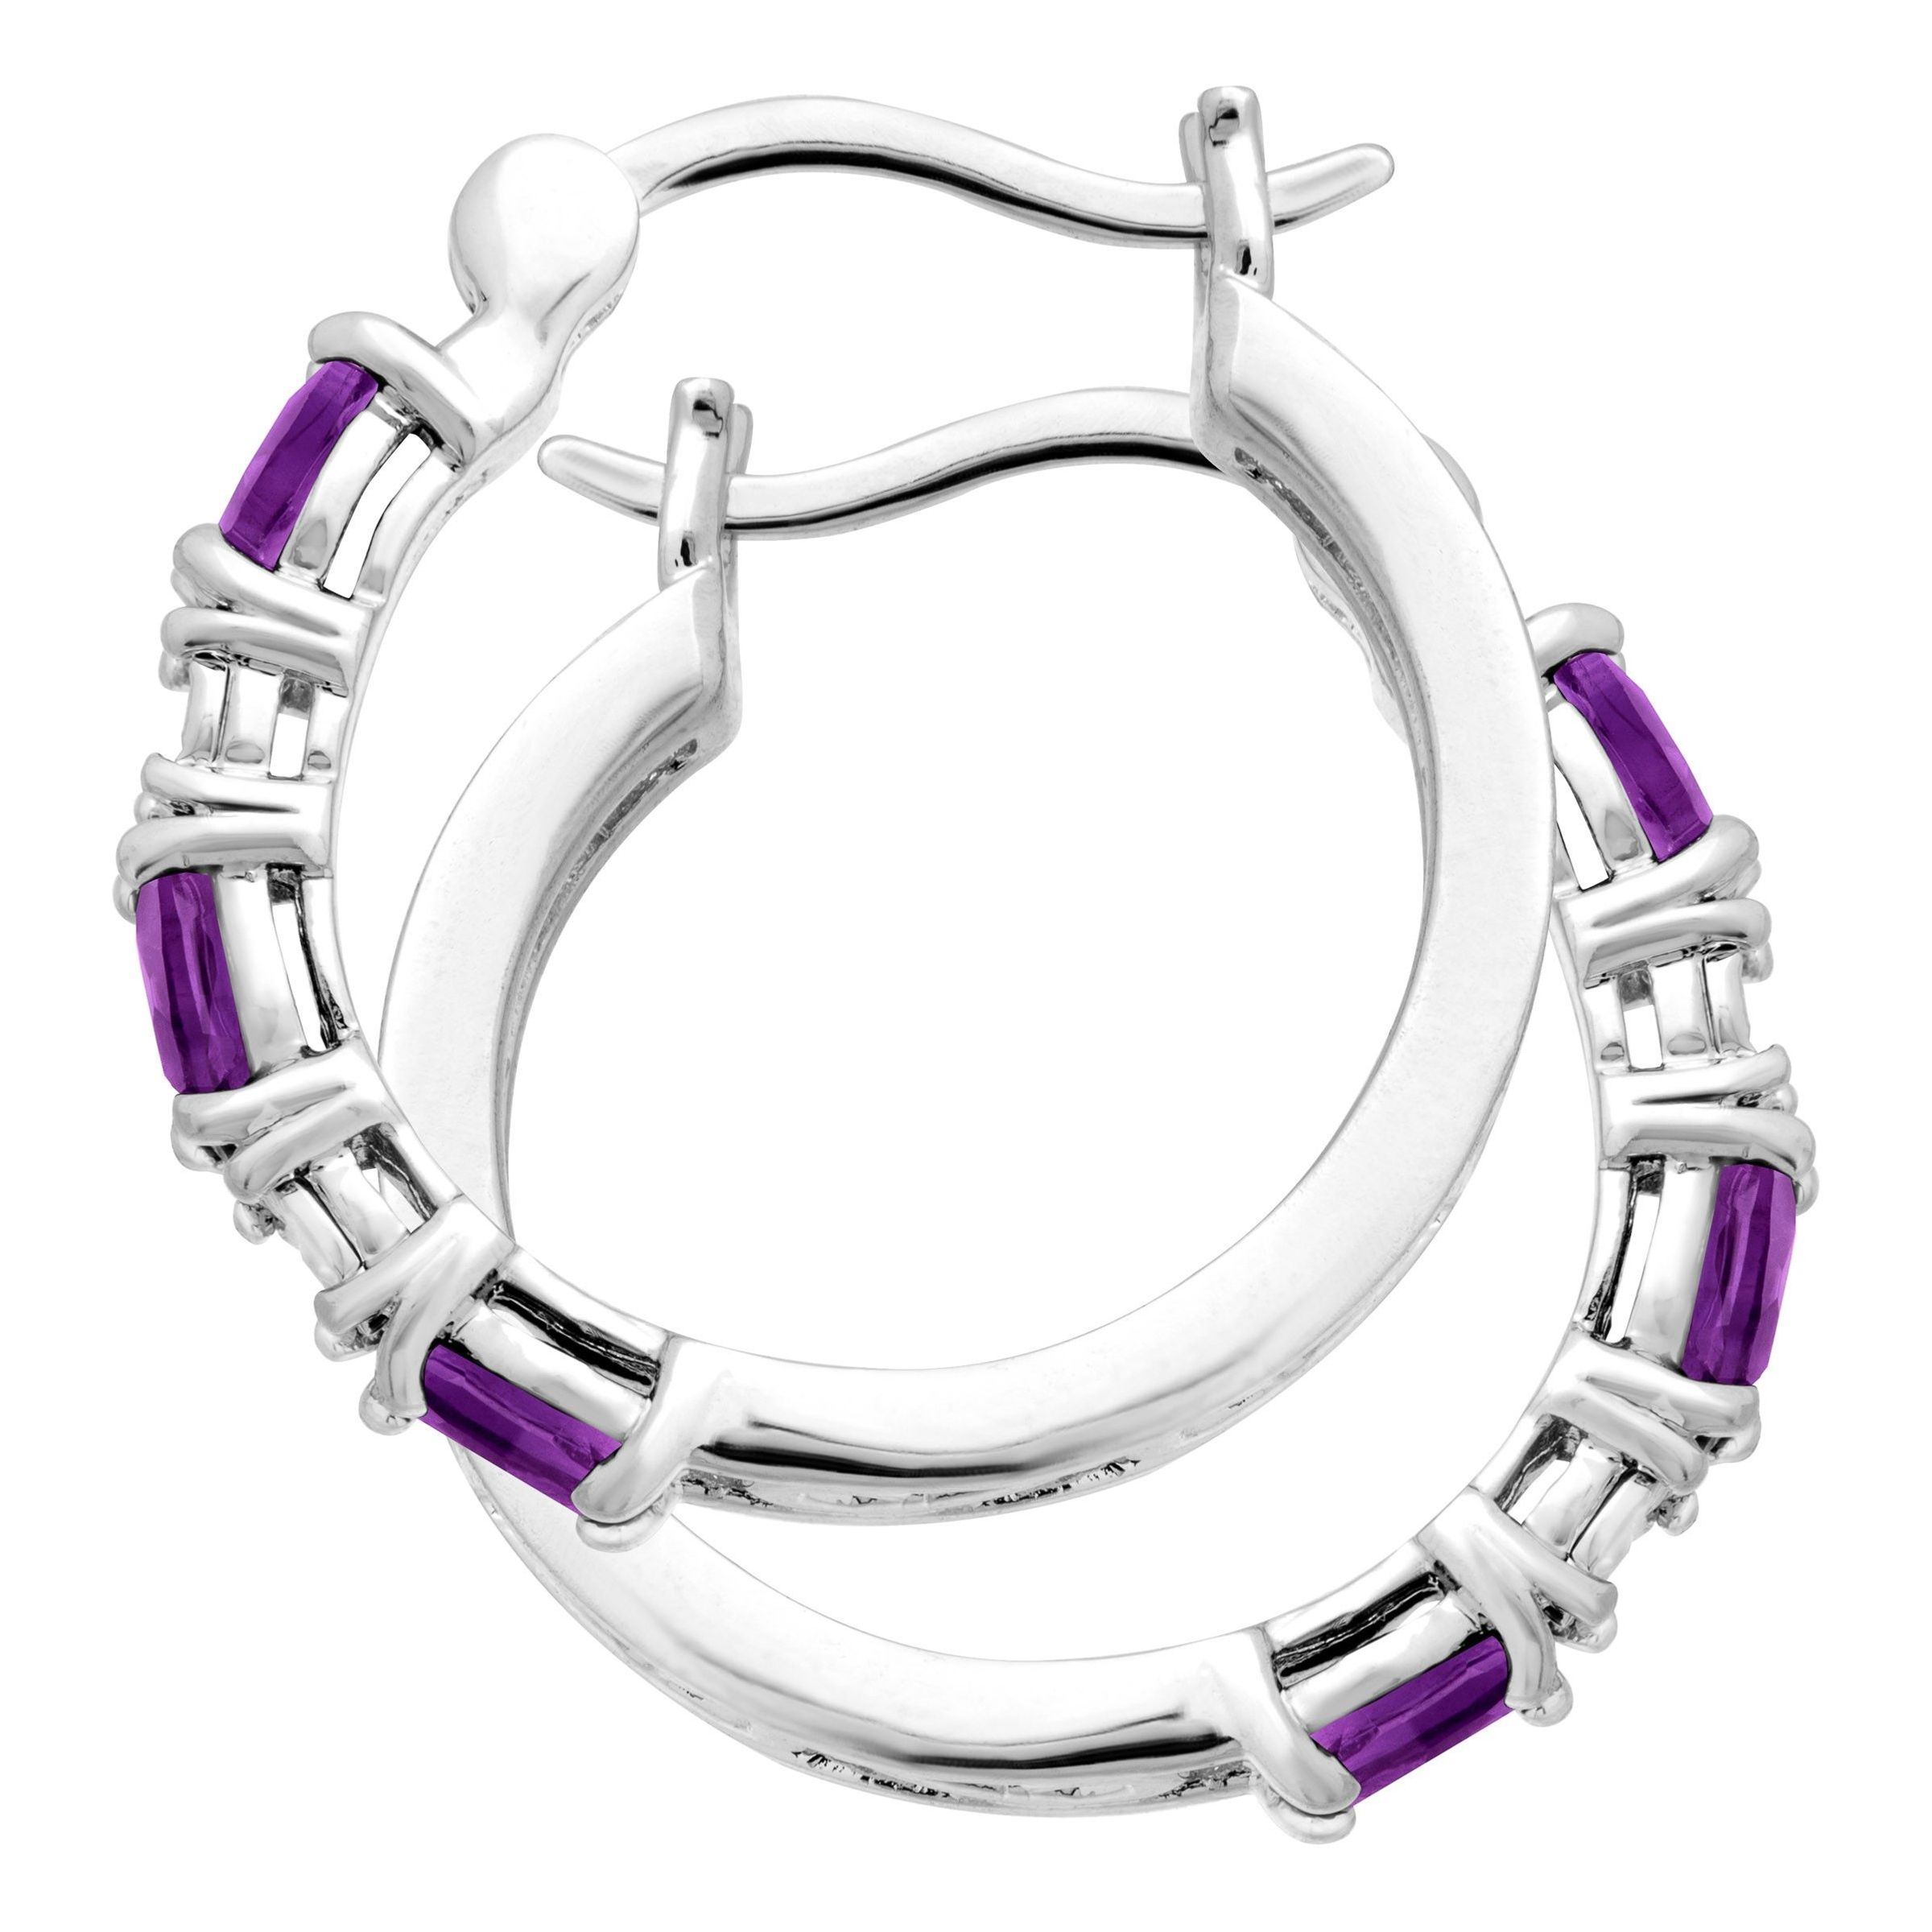 Gemstone-Hoop-Earrings-with-Diamonds-in-Platinum-Plated-Brass thumbnail 9